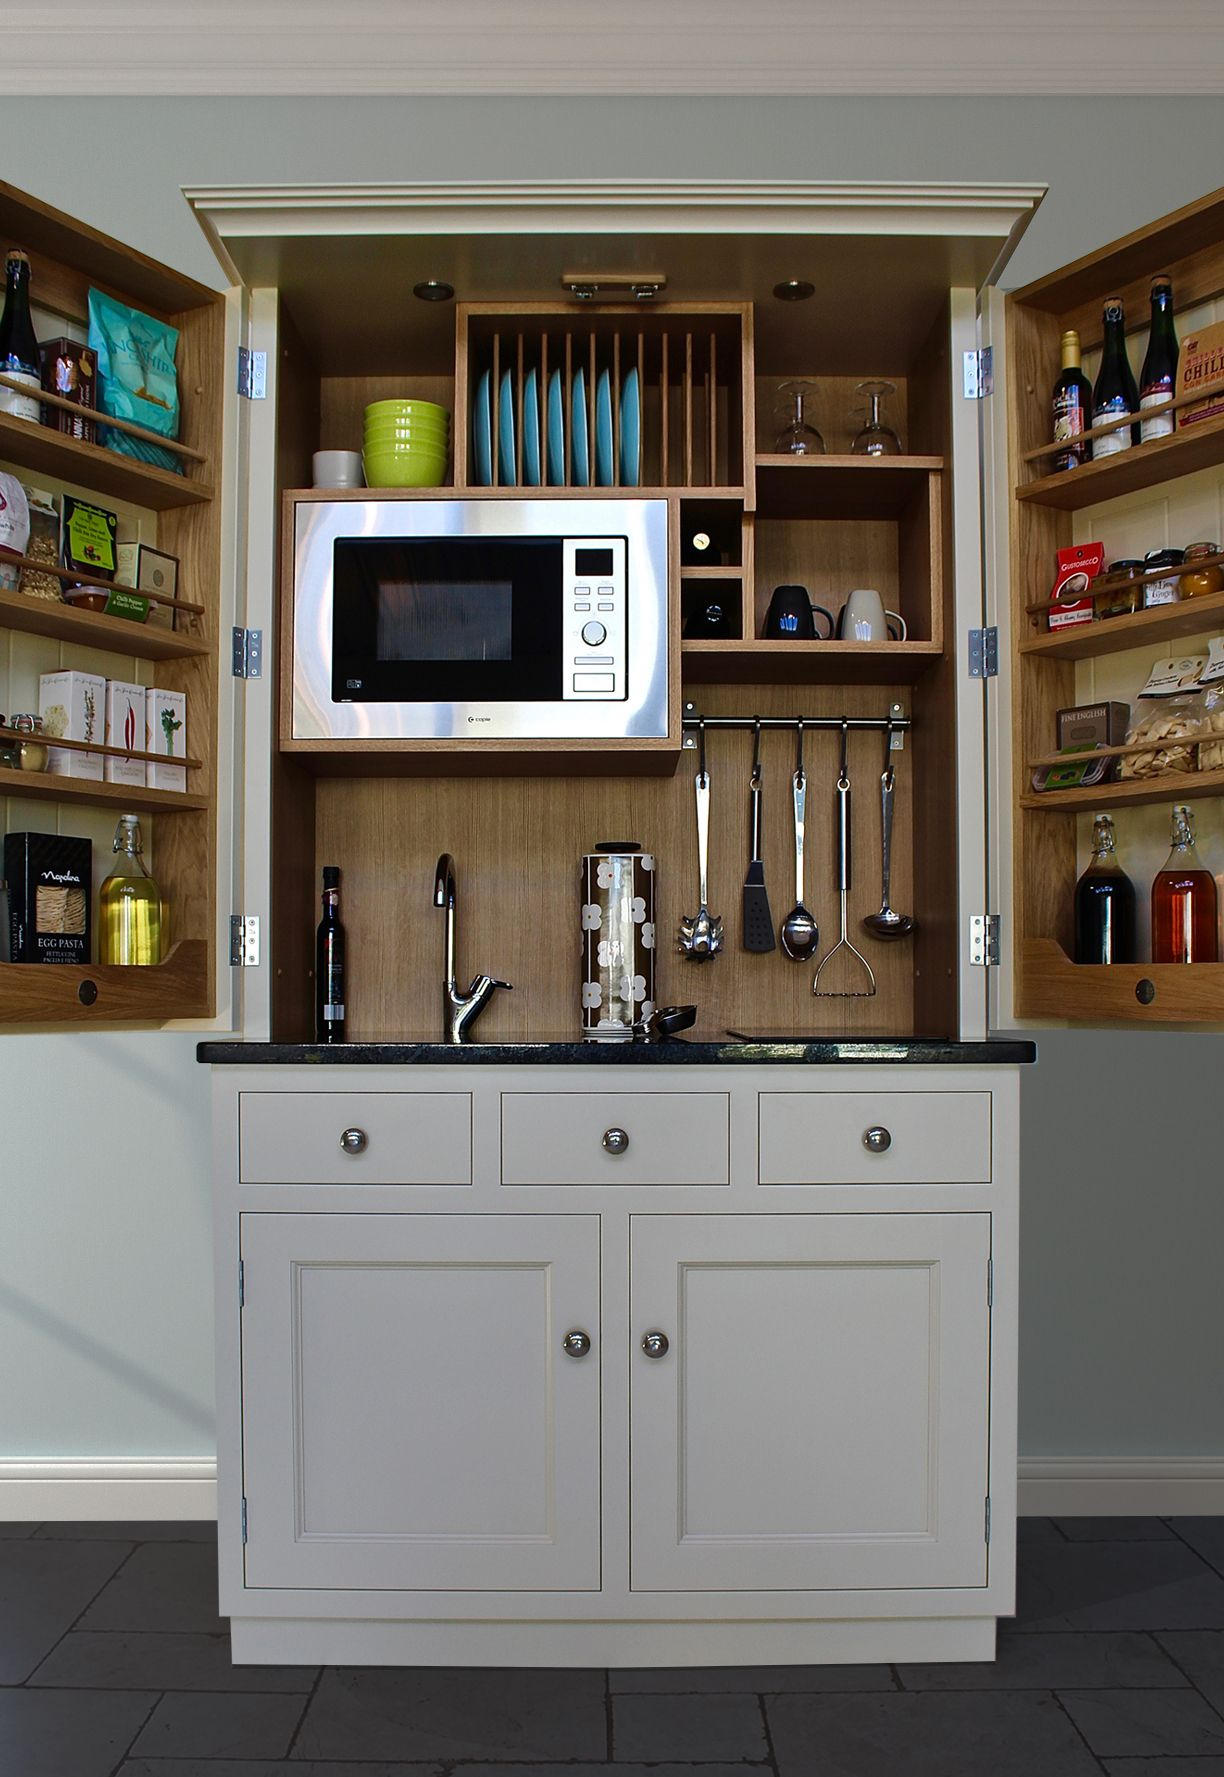 Introducing The Fearnley Mayfair, The Latest Addition To The Culshaw  Kitchenette Range. At Just Over 1.1m, It Provides Full Kitchen  Functionality In A Very ...